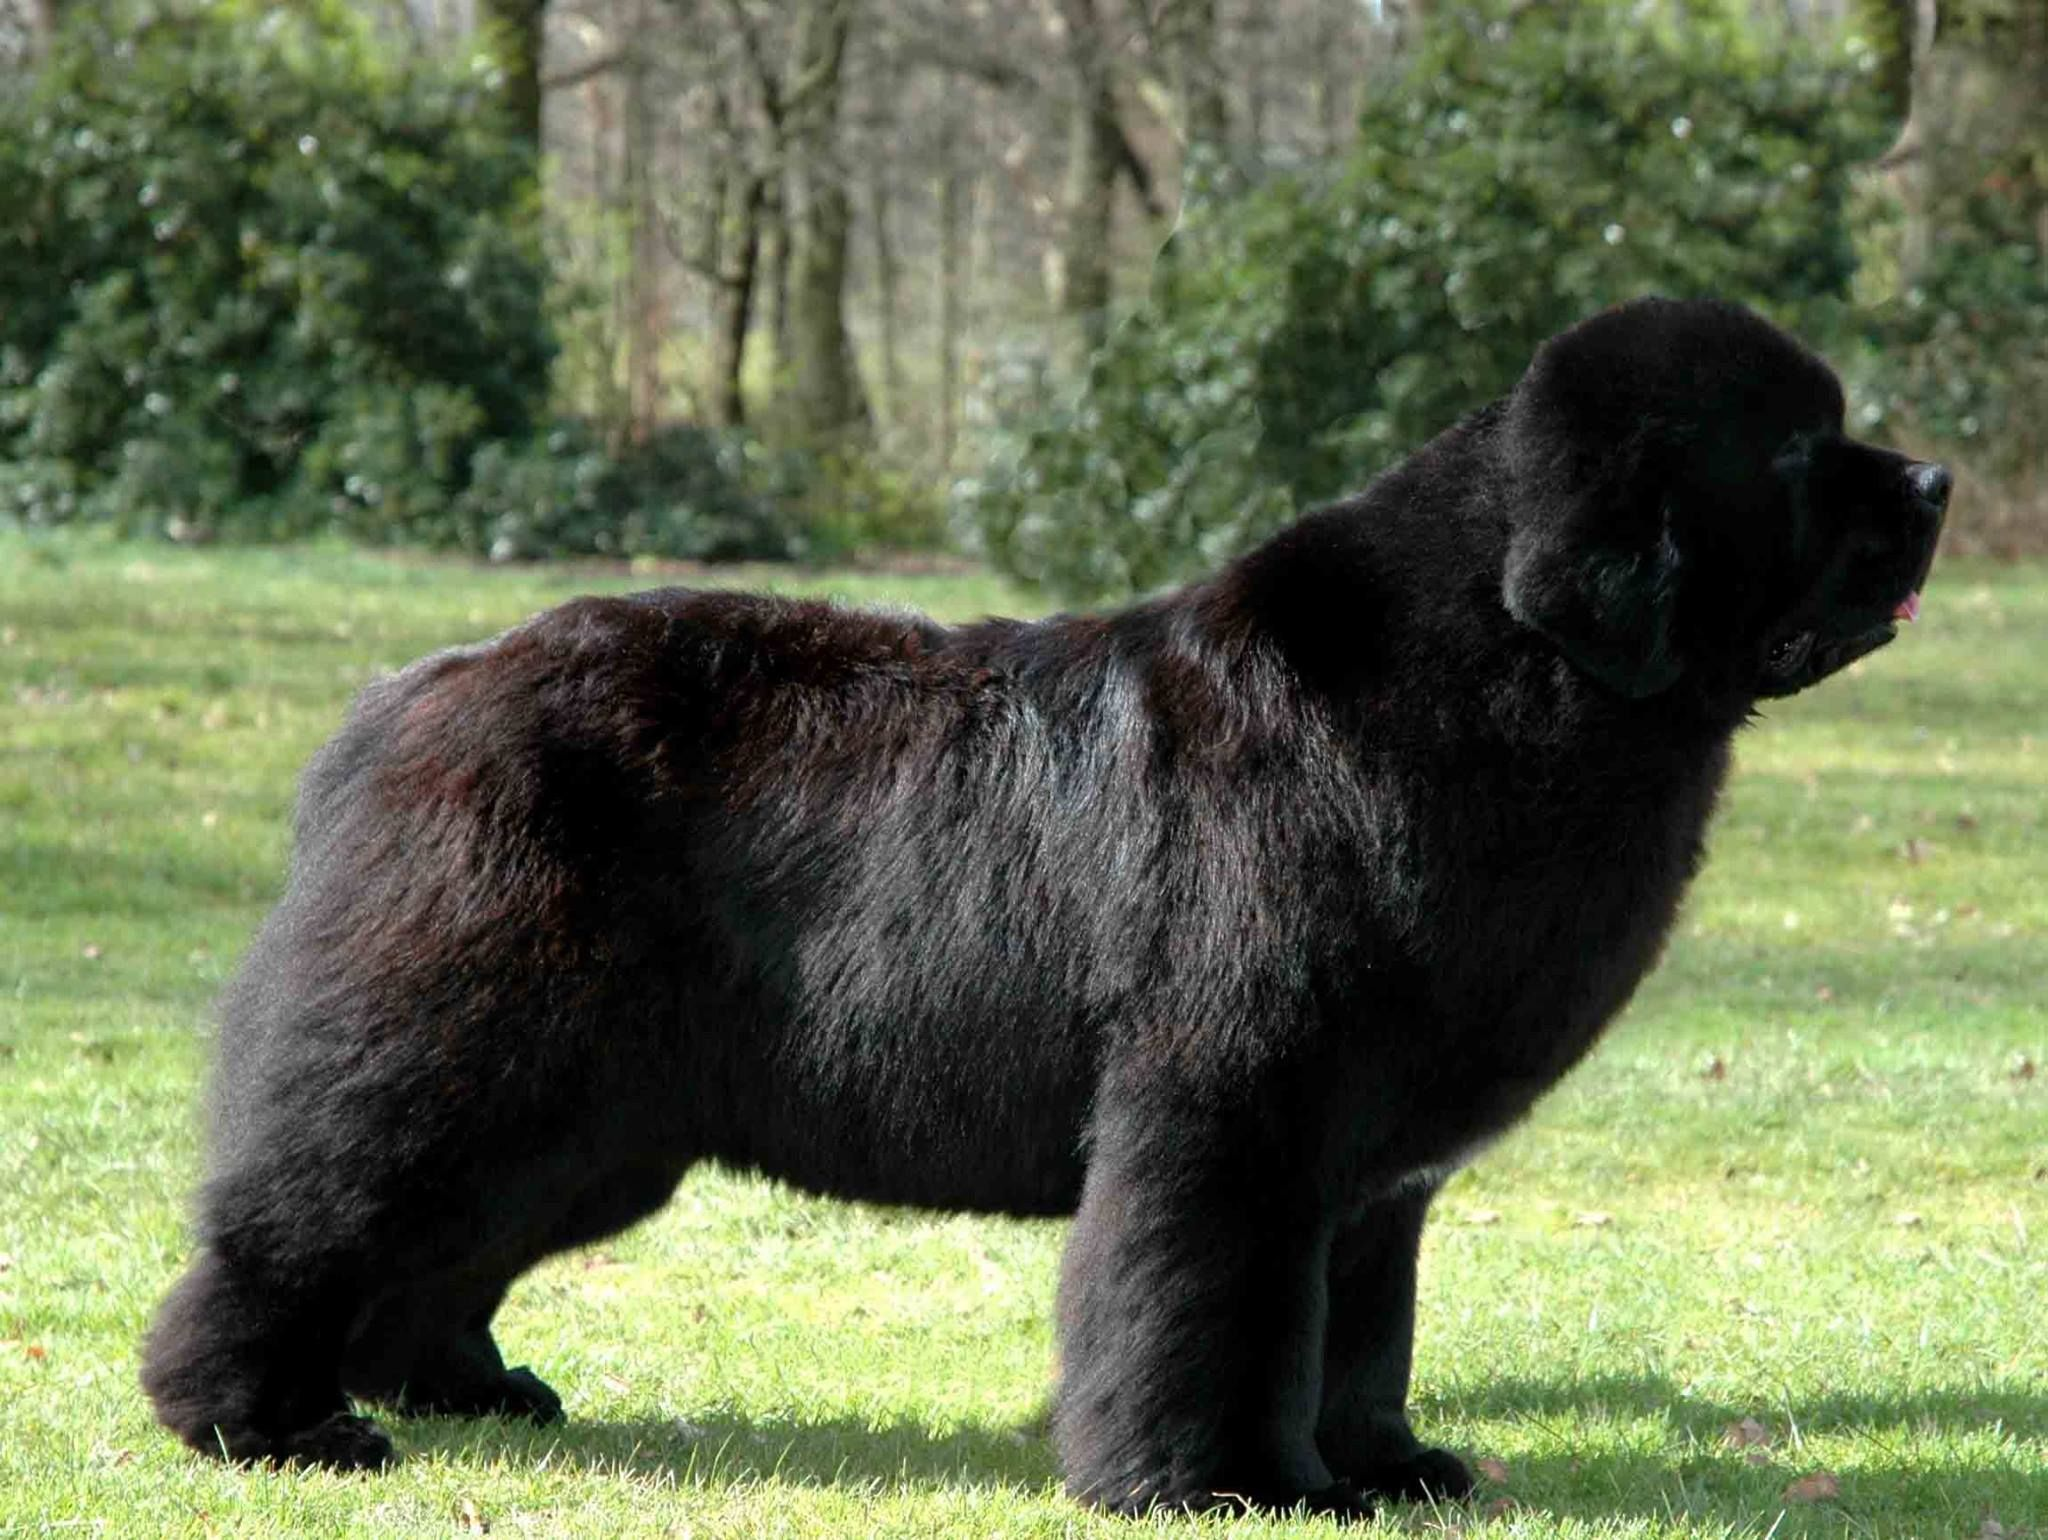 35 very beautiful newfoundland dog pictures - Newfoundland Pretty Sure This Will Be My Next Dog